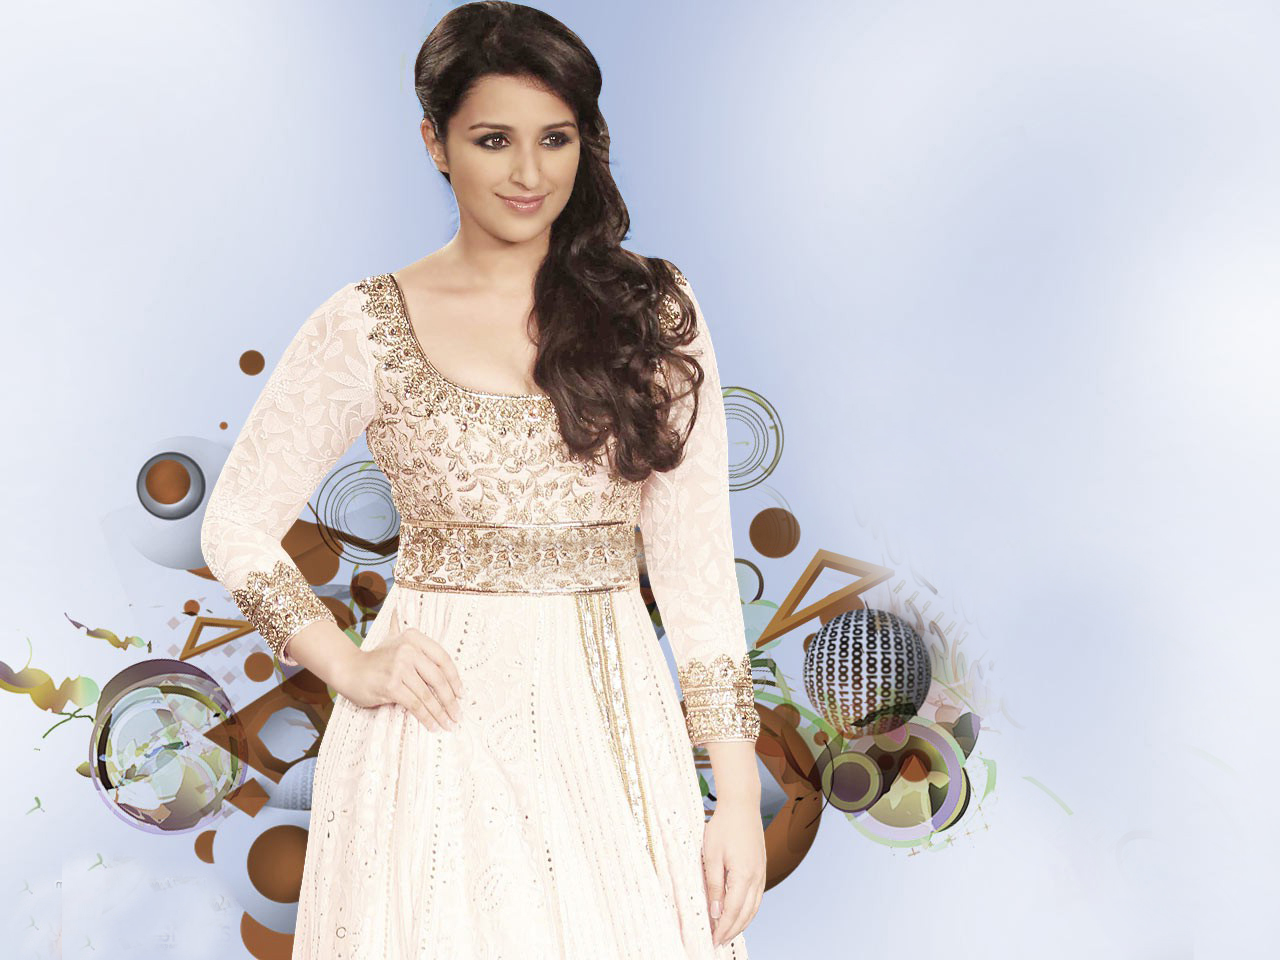 http://3.bp.blogspot.com/-hkyZOqzkZPM/UXp5QzJizDI/AAAAAAAAGd8/PX8S3RKRBLg/s1600/parineeti+chopra+hd+wallpapers+++latest+new+collection+(29).jpg